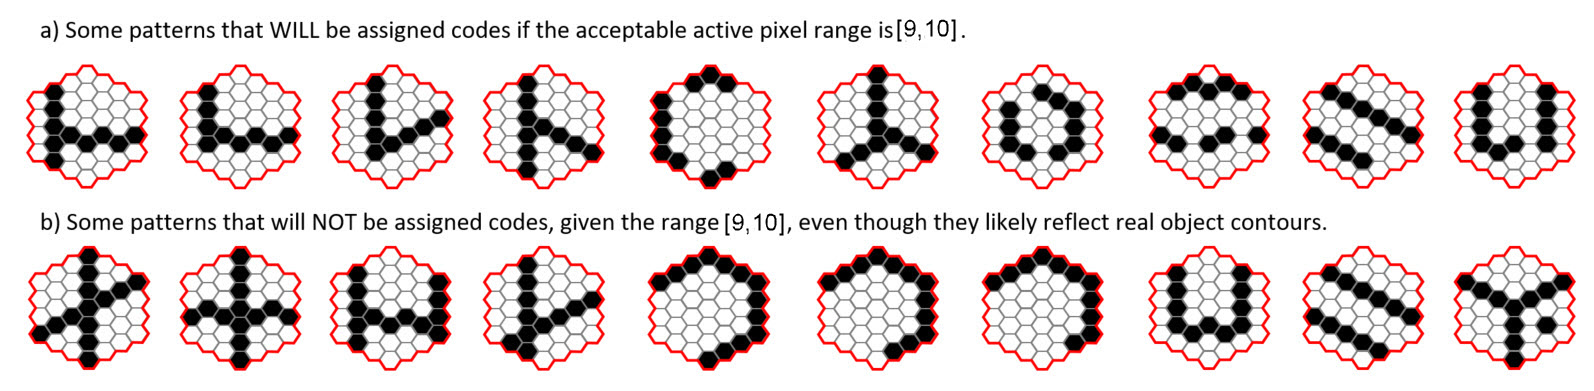 acceptable and unacceptable features for 6 to 10 pixel range